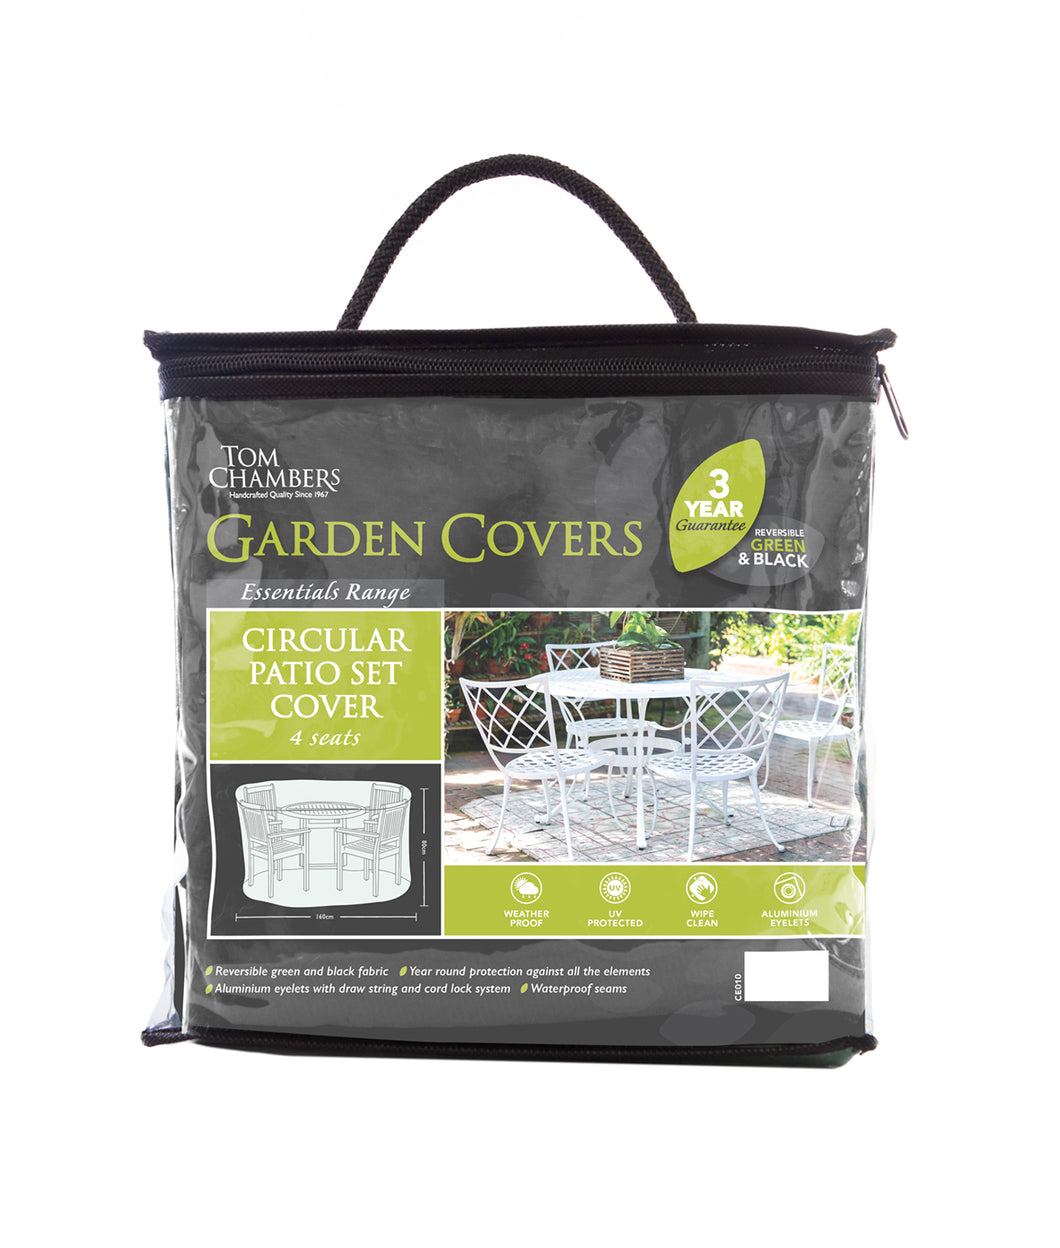 Circular Patio Set Cover - Essential - 4 Seat